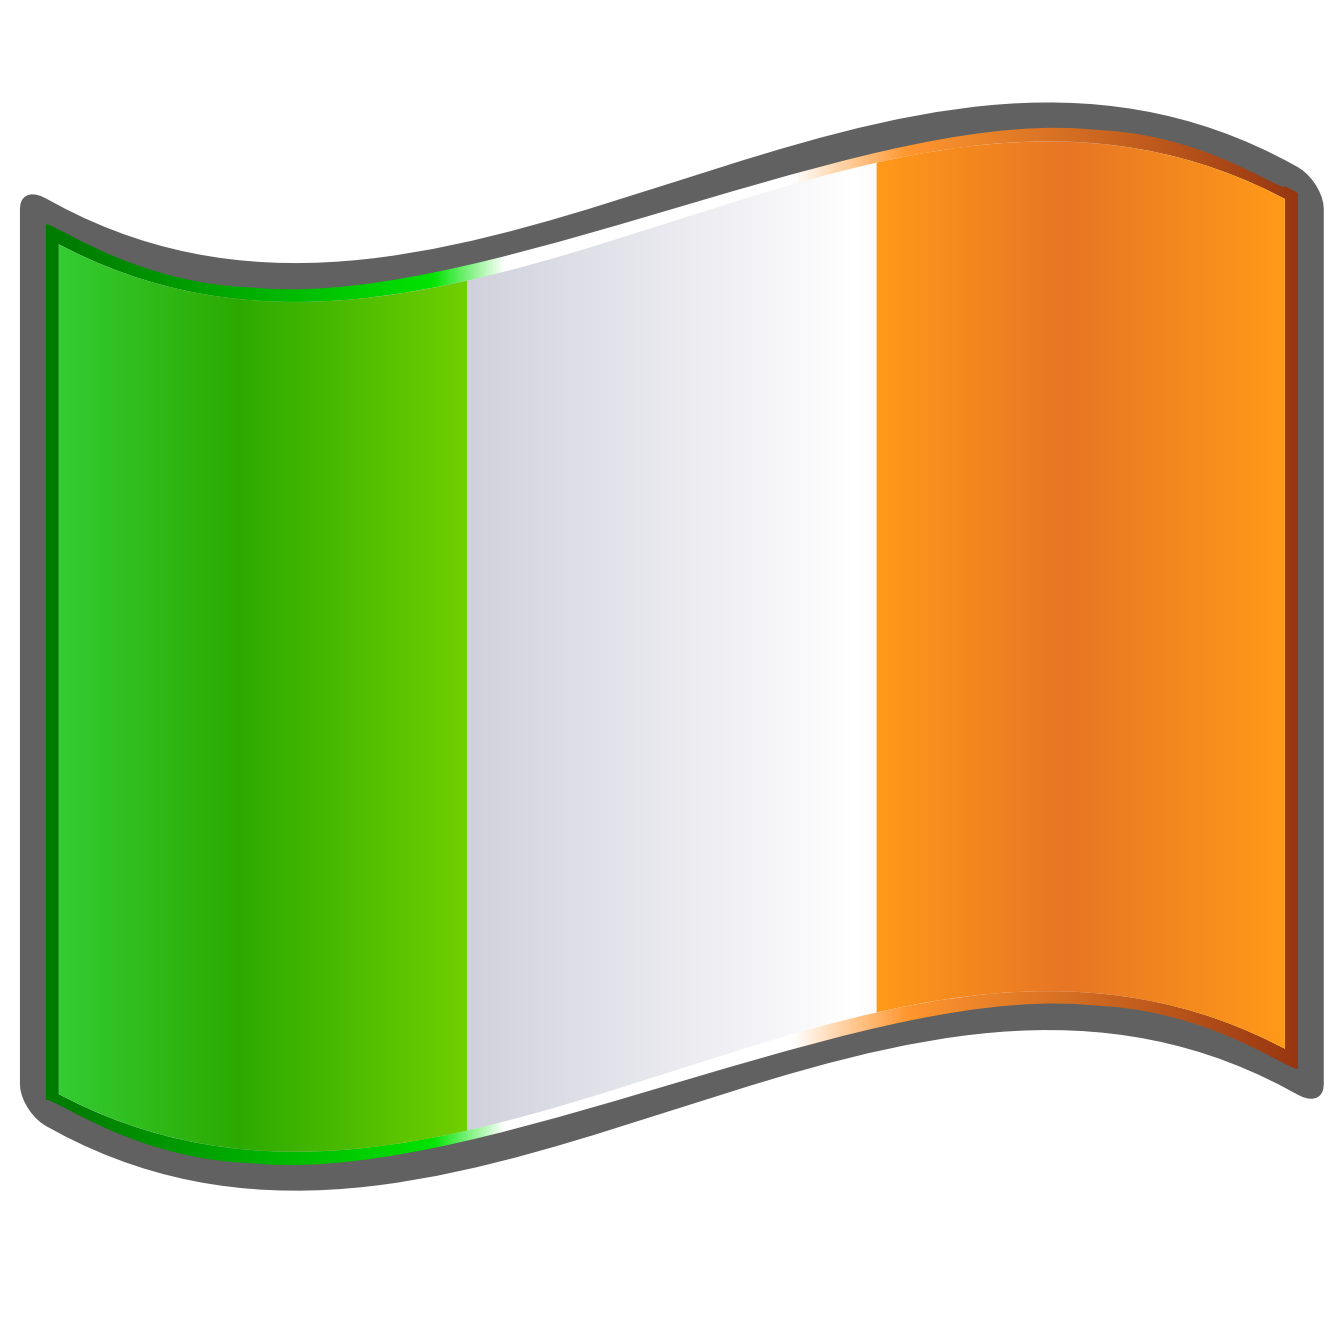 1331x1331 Ireland clipart irish flag